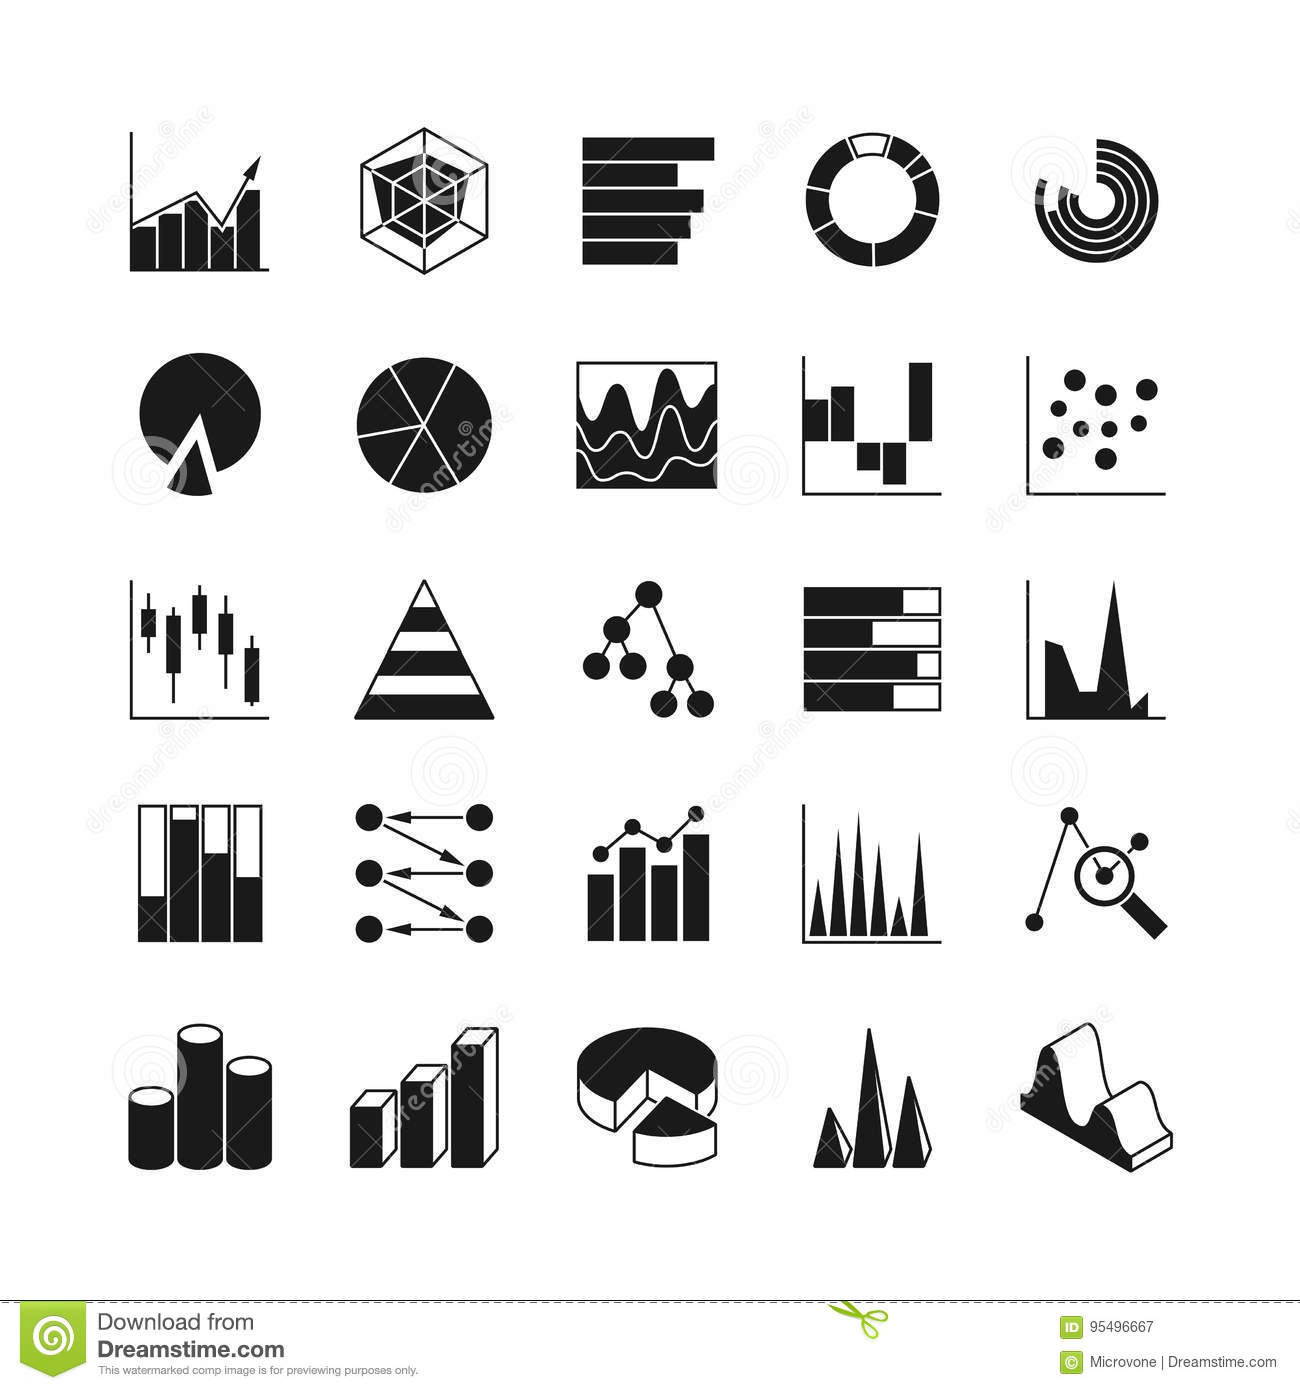 Data Bar Graphic And Statistics Charts Vector Icons